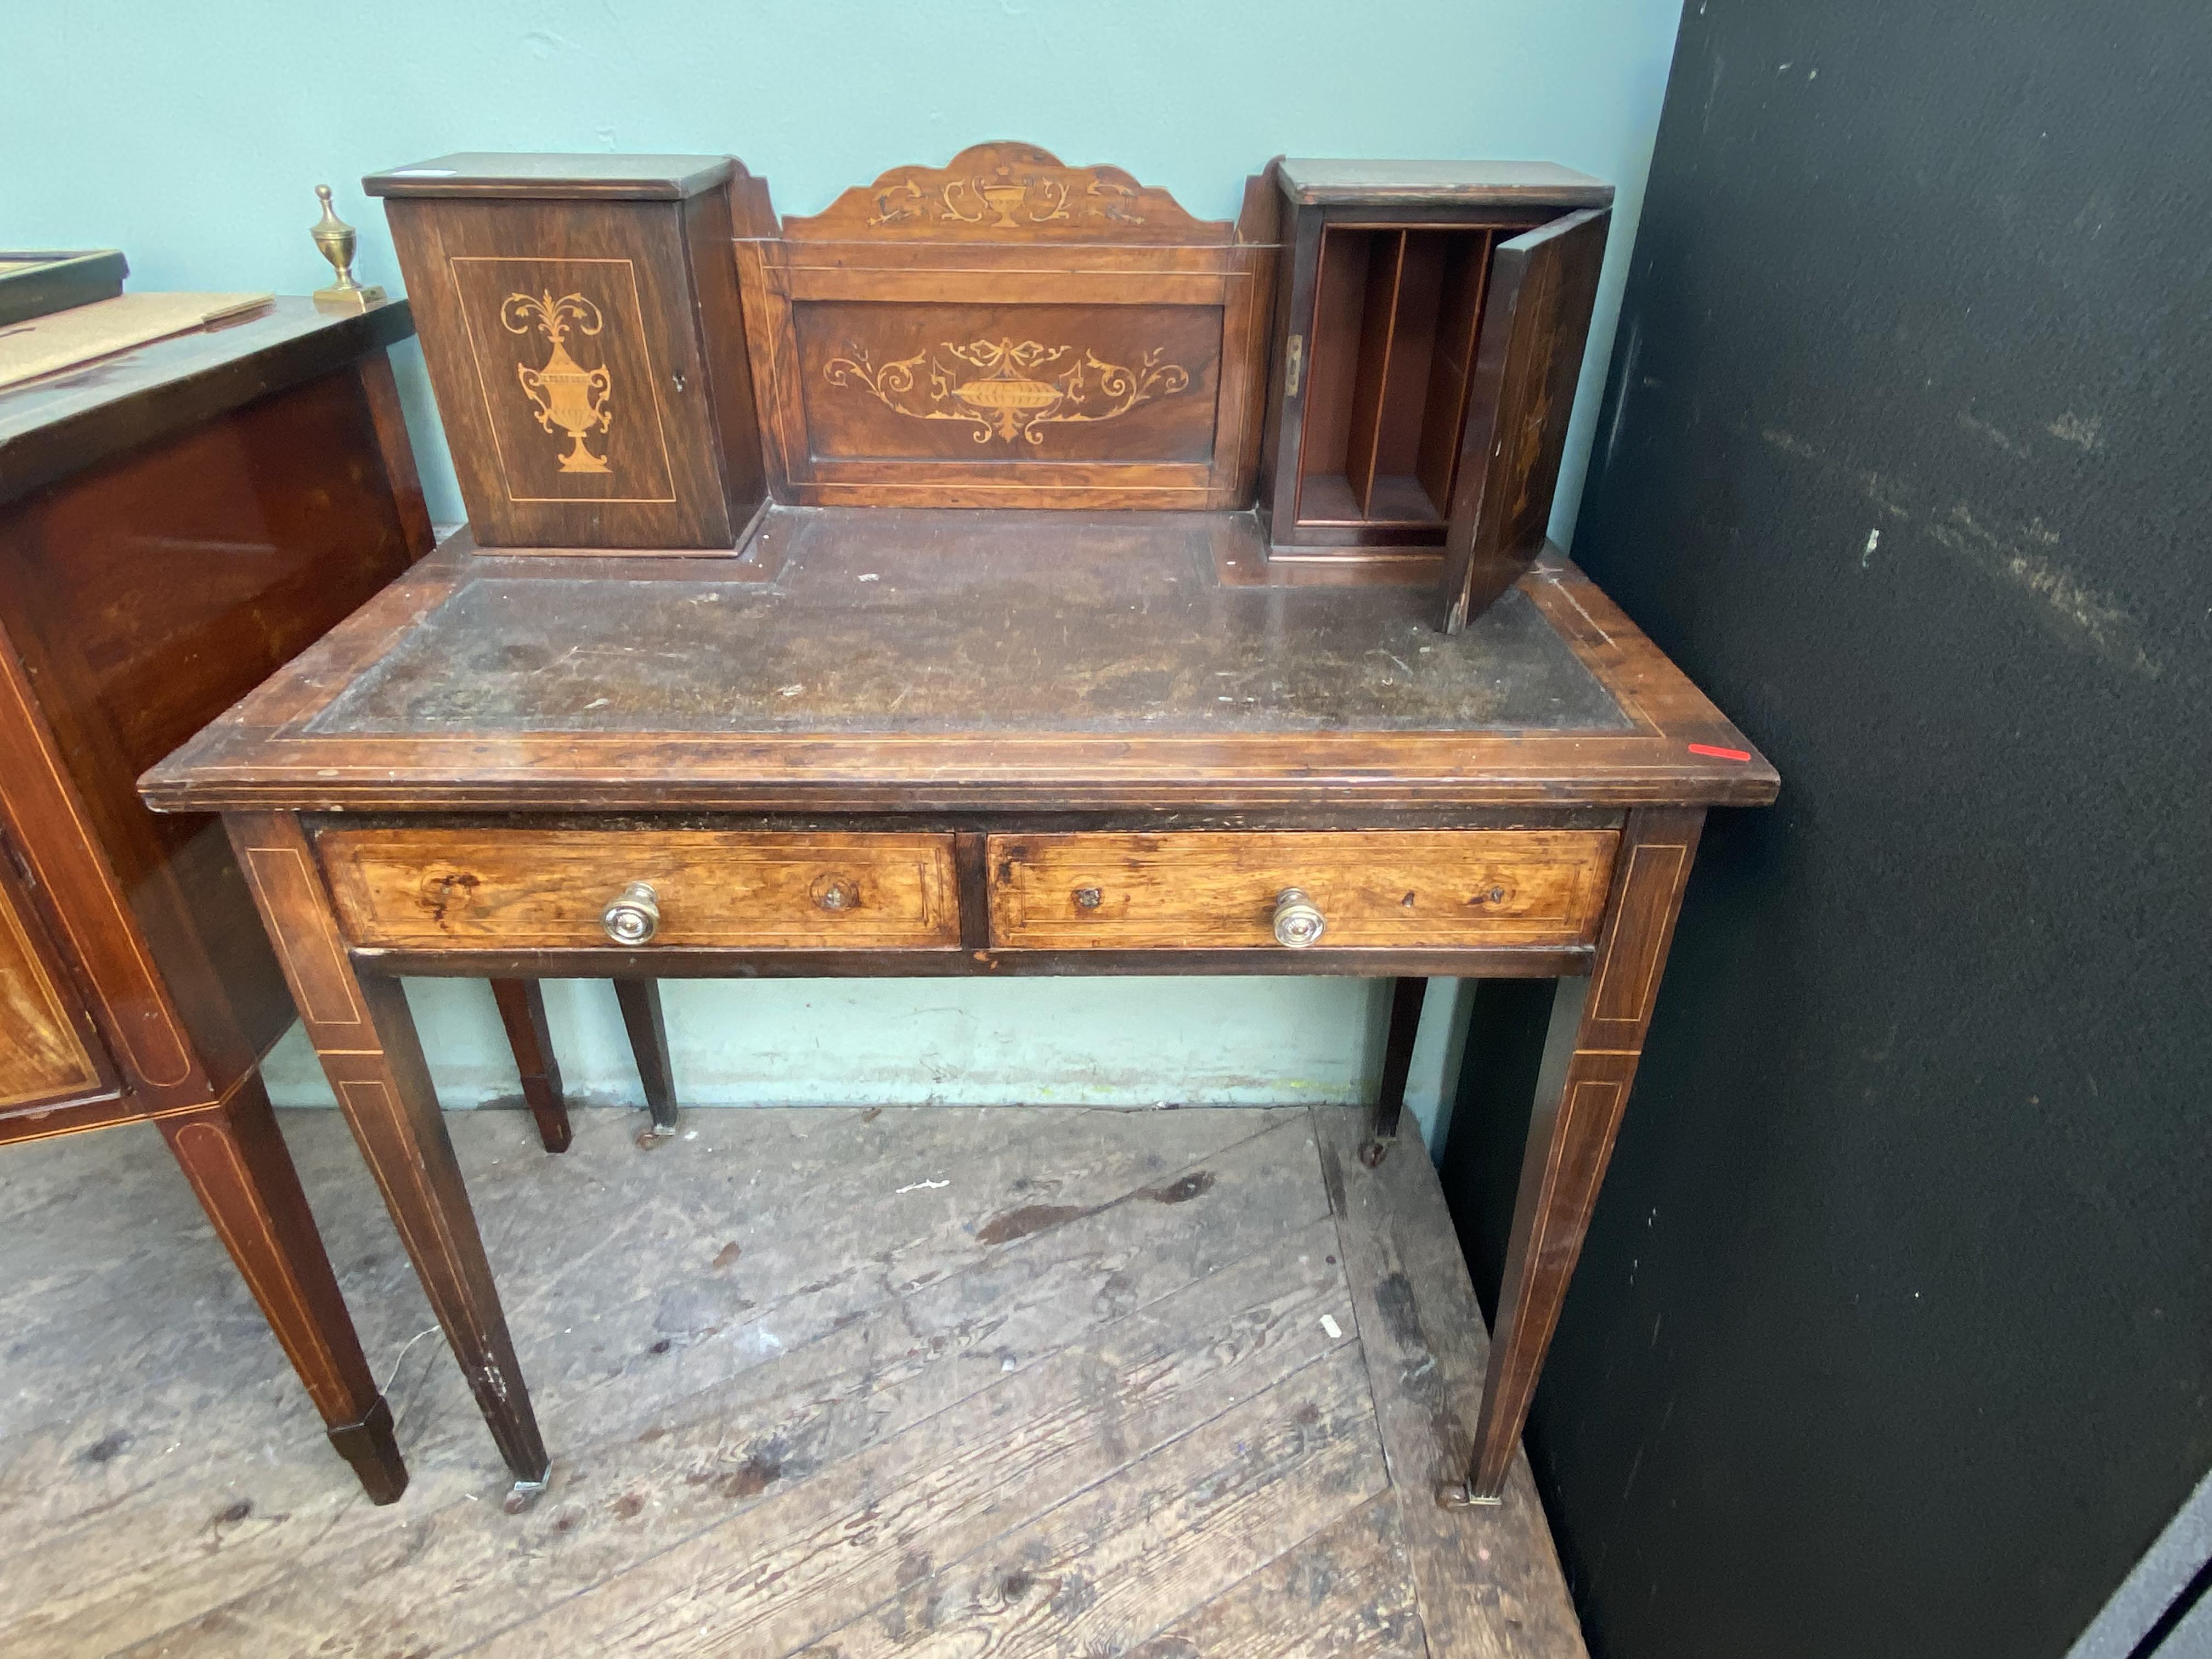 Inlaid rosewood ladies writing bureau fitted 2 upper shelved cabinets and 2 drawers below on